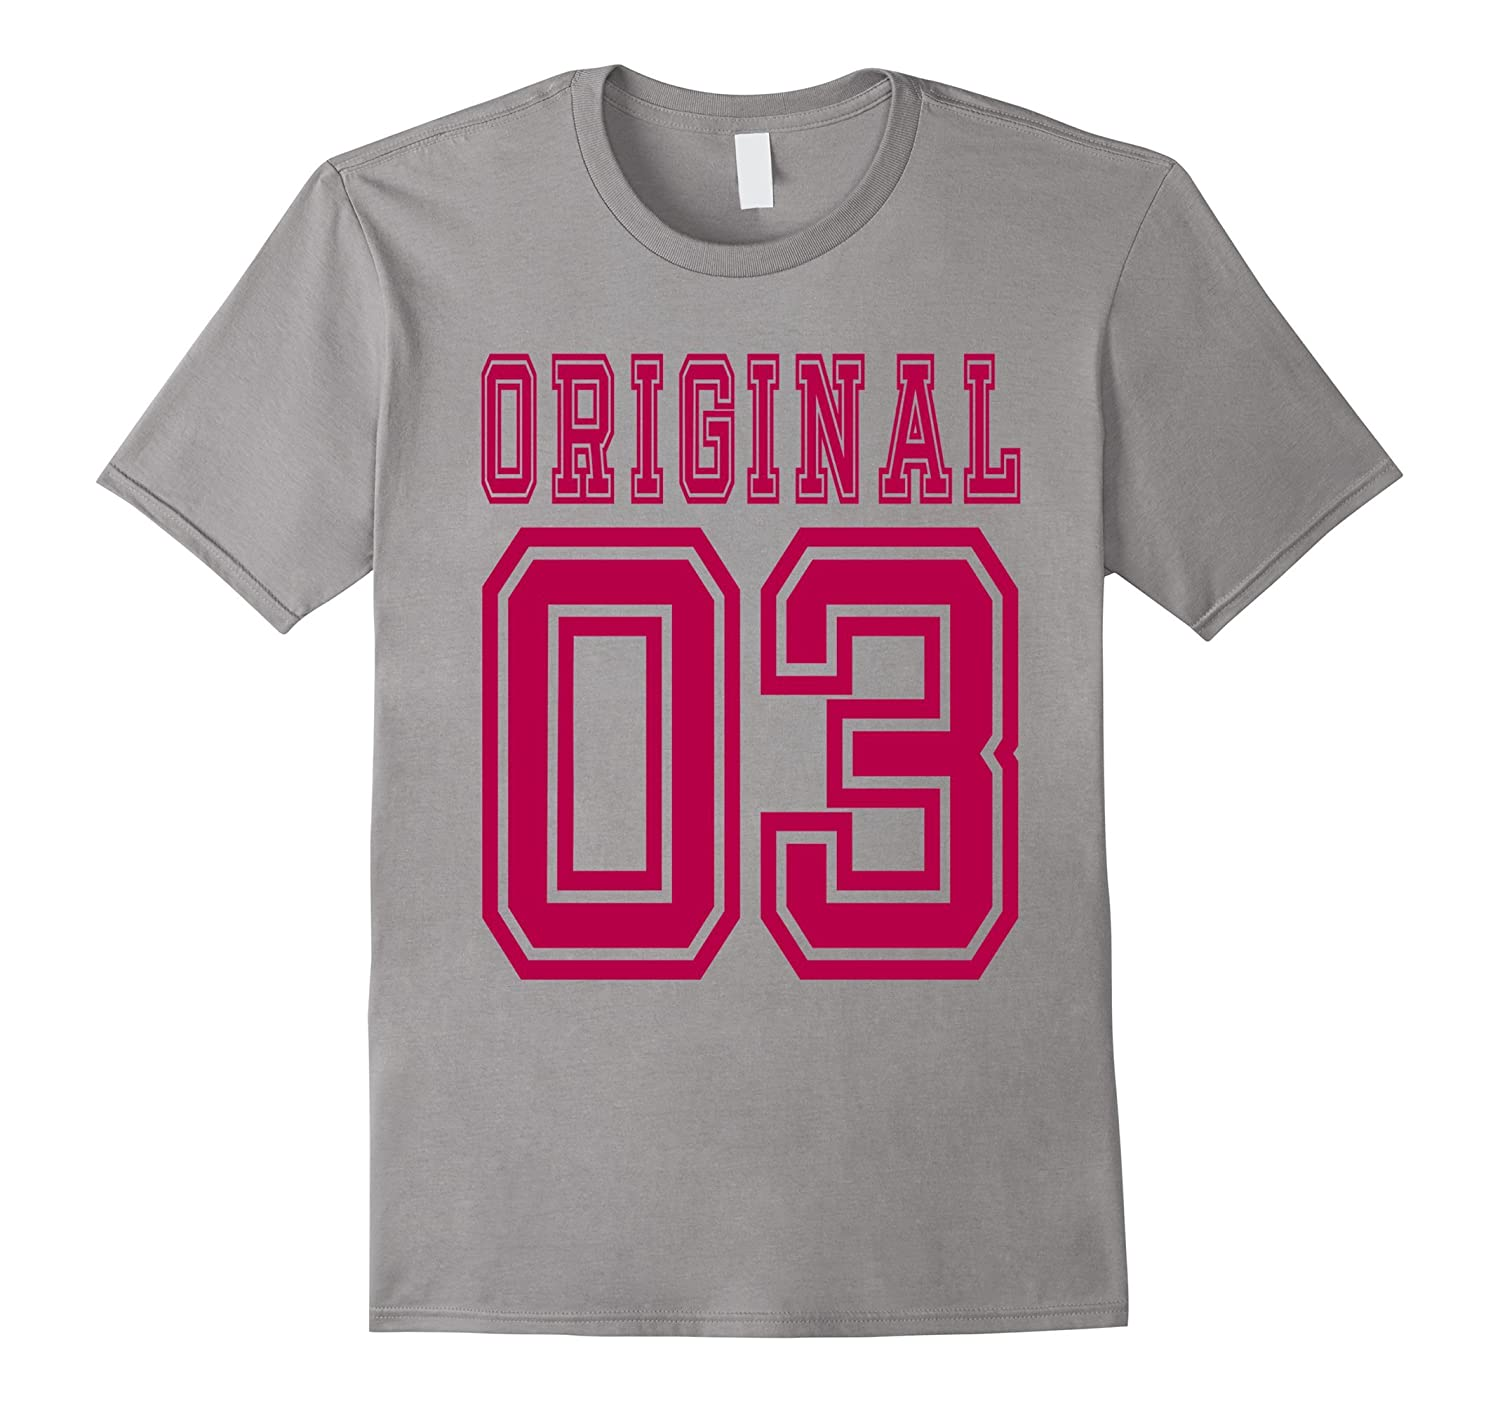 13th birthday Gift Idea 13 Year Old Girl Shirt 2003 Tee C-BN